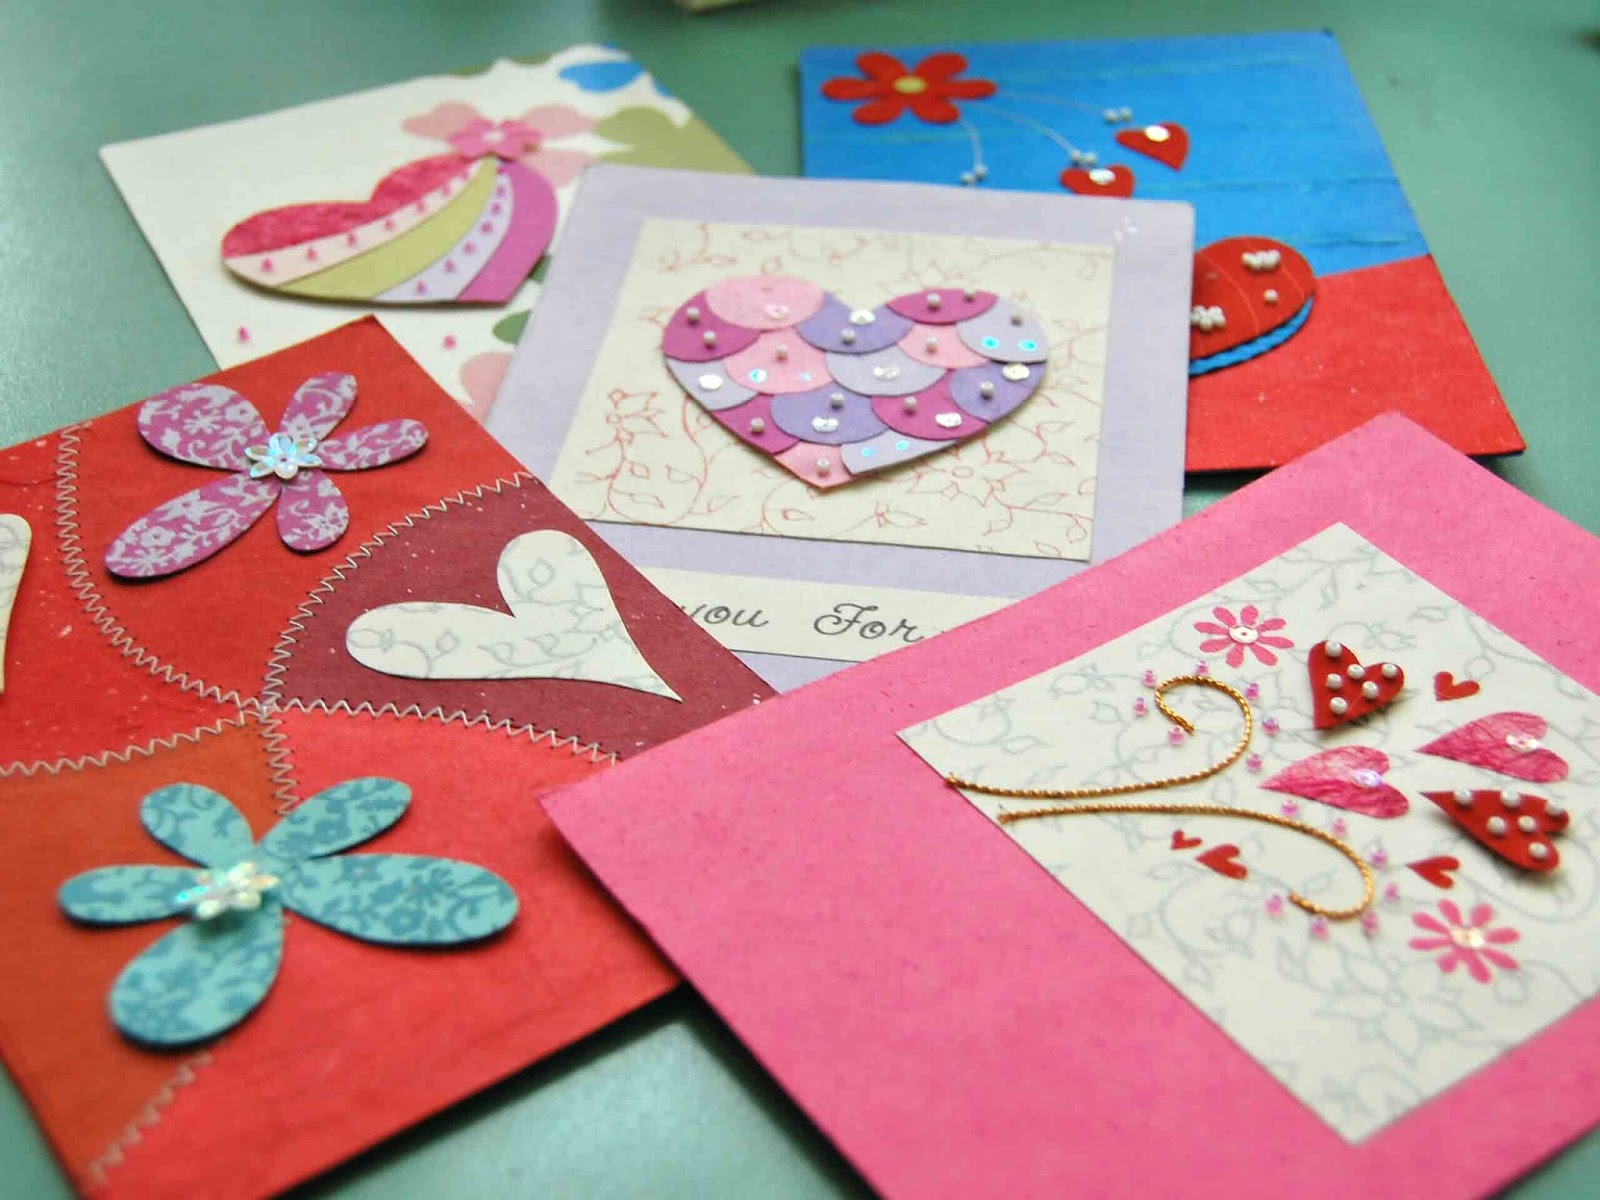 For handmade paper company greeting cards never grow old a handmade paper company in salay misamis oriental is in a brave fight to prove that sending old fashioned greeting cards never goes out of style in these kristyandbryce Images